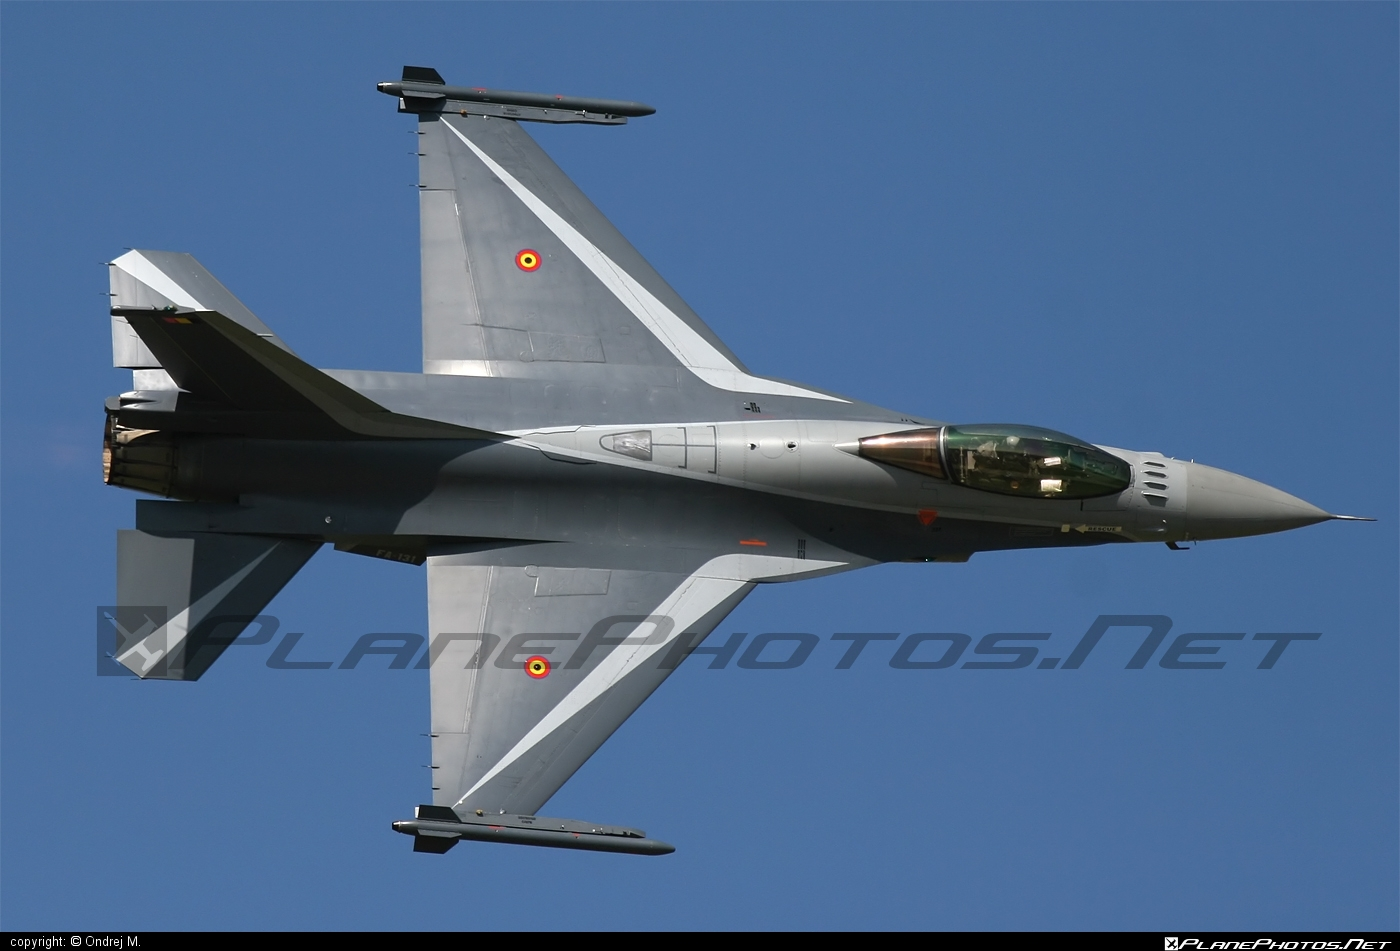 Luchtcomponent (Belgian Air Force) SABCA F-16AM Fighting Falcon - FA-131 #f16 #f16am #fightingfalcon #sabca